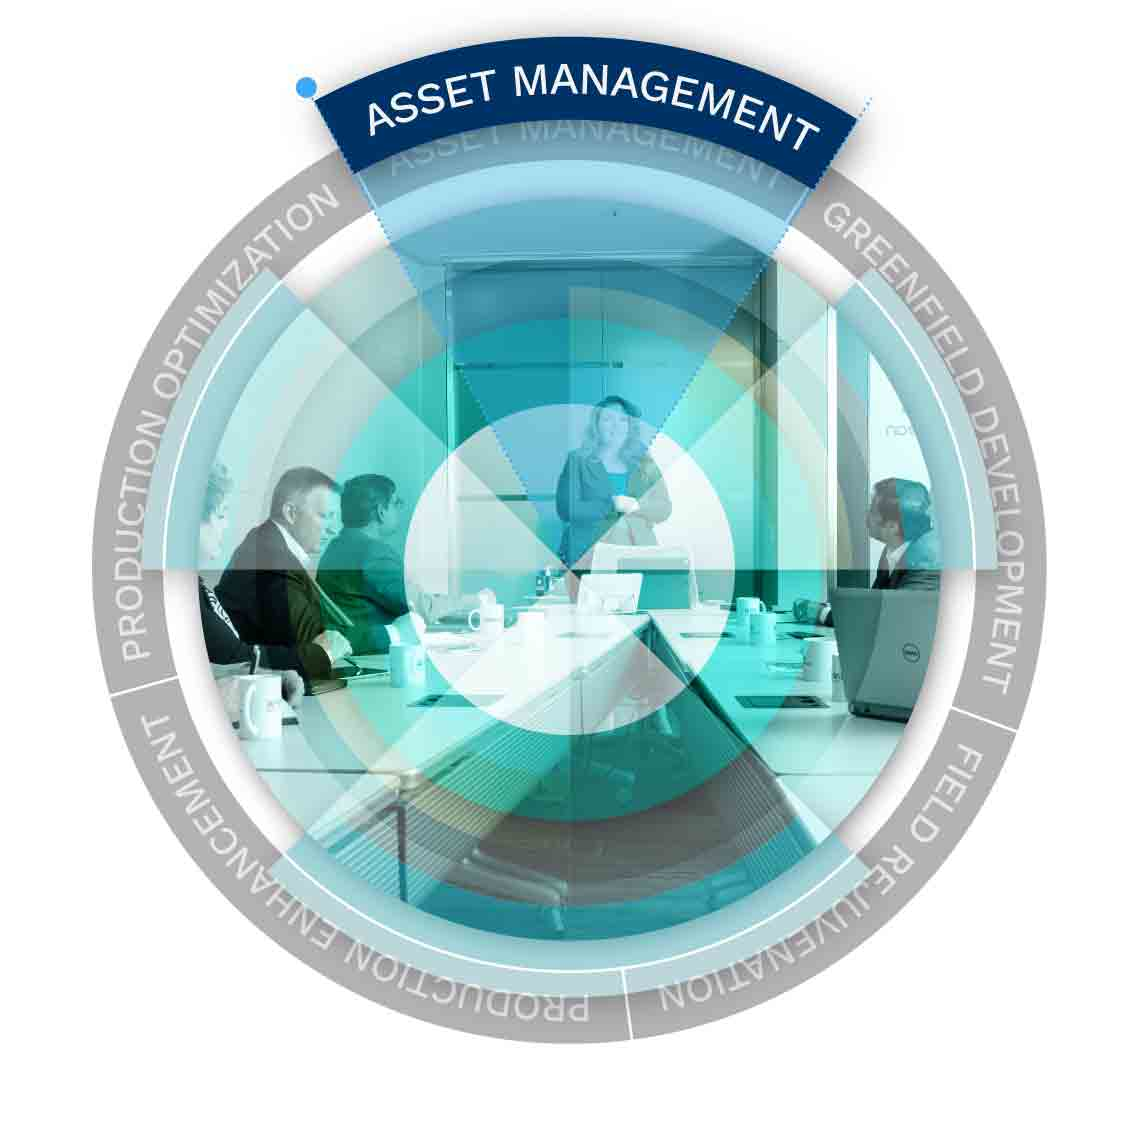 Graphic displaying Asset Management text.